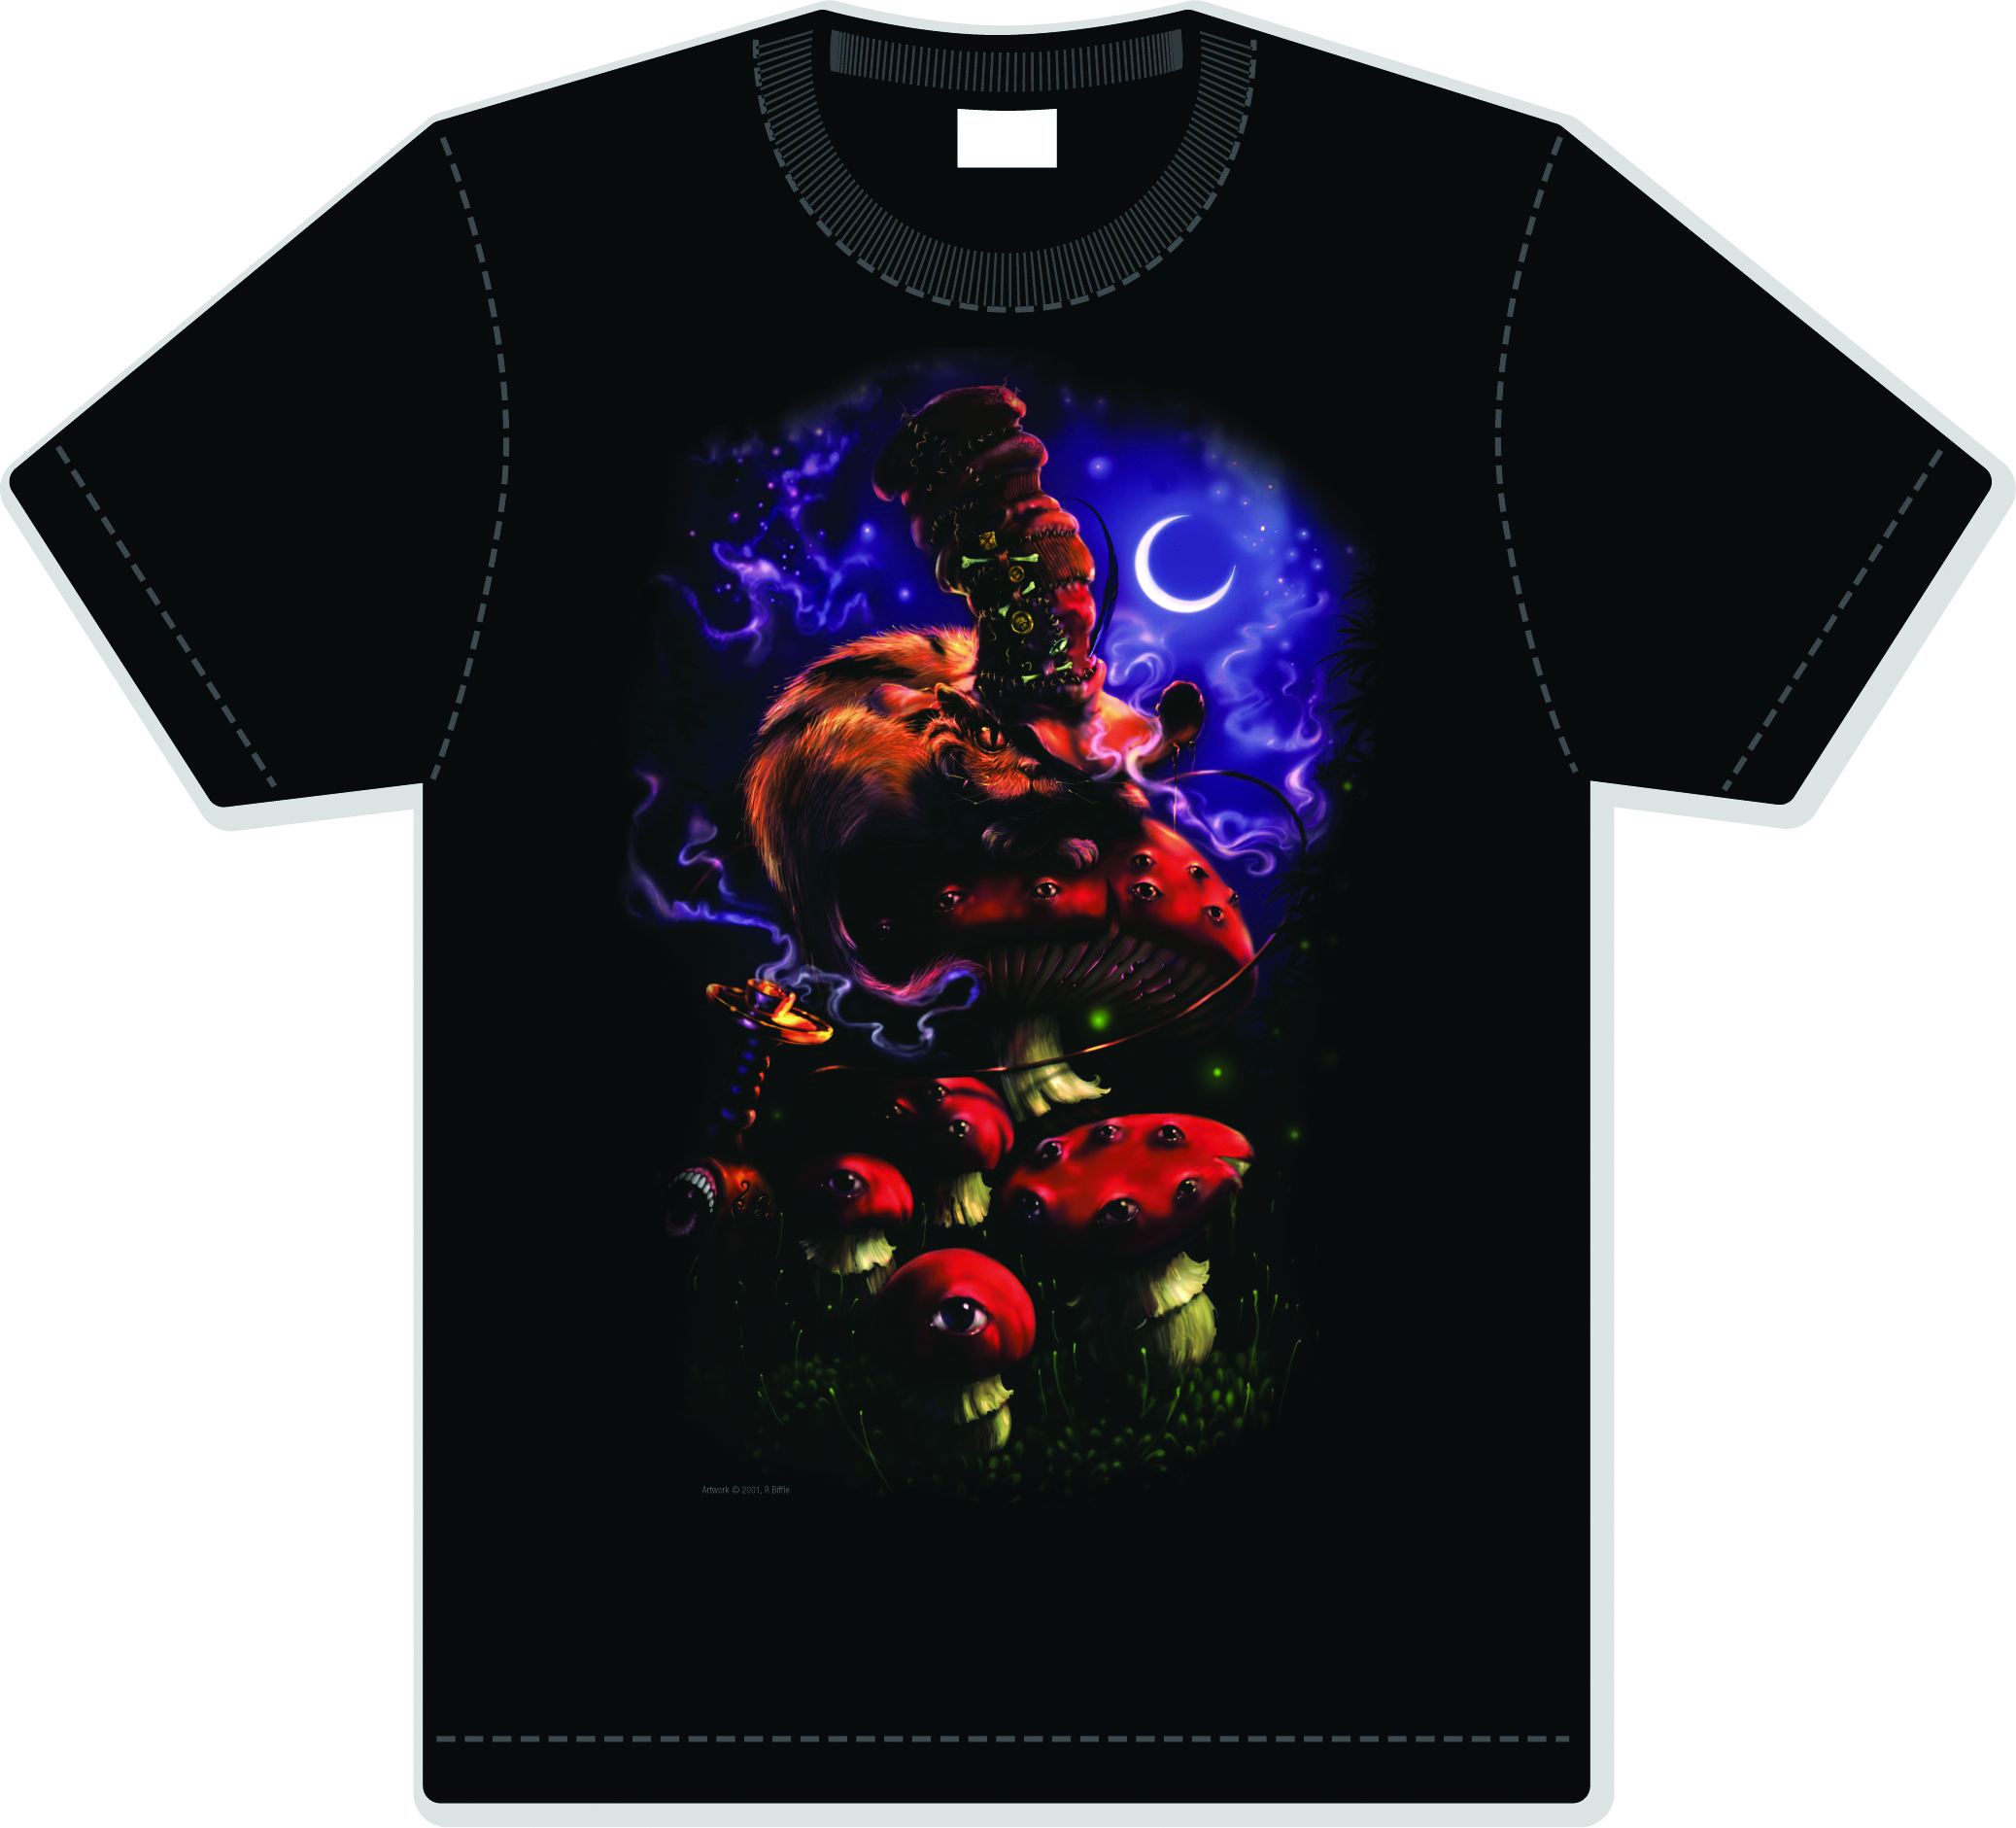 DOWN THE RABBIT HOLE CHESHIRE MOON BLACK T/S XXL